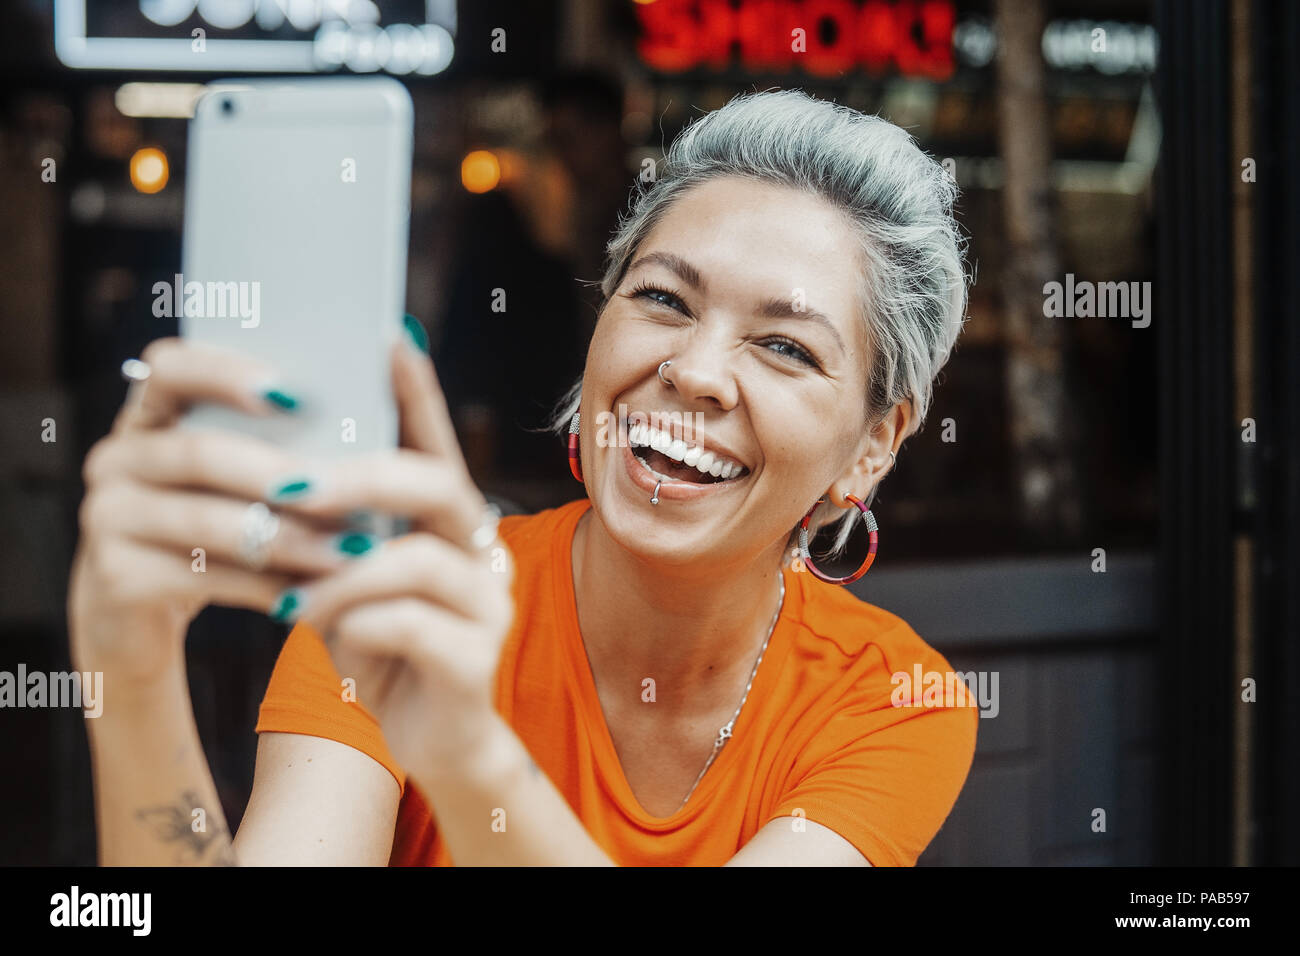 Attractive positive blonde woman in orange T-shirt making selfie at cafe - Stock Image